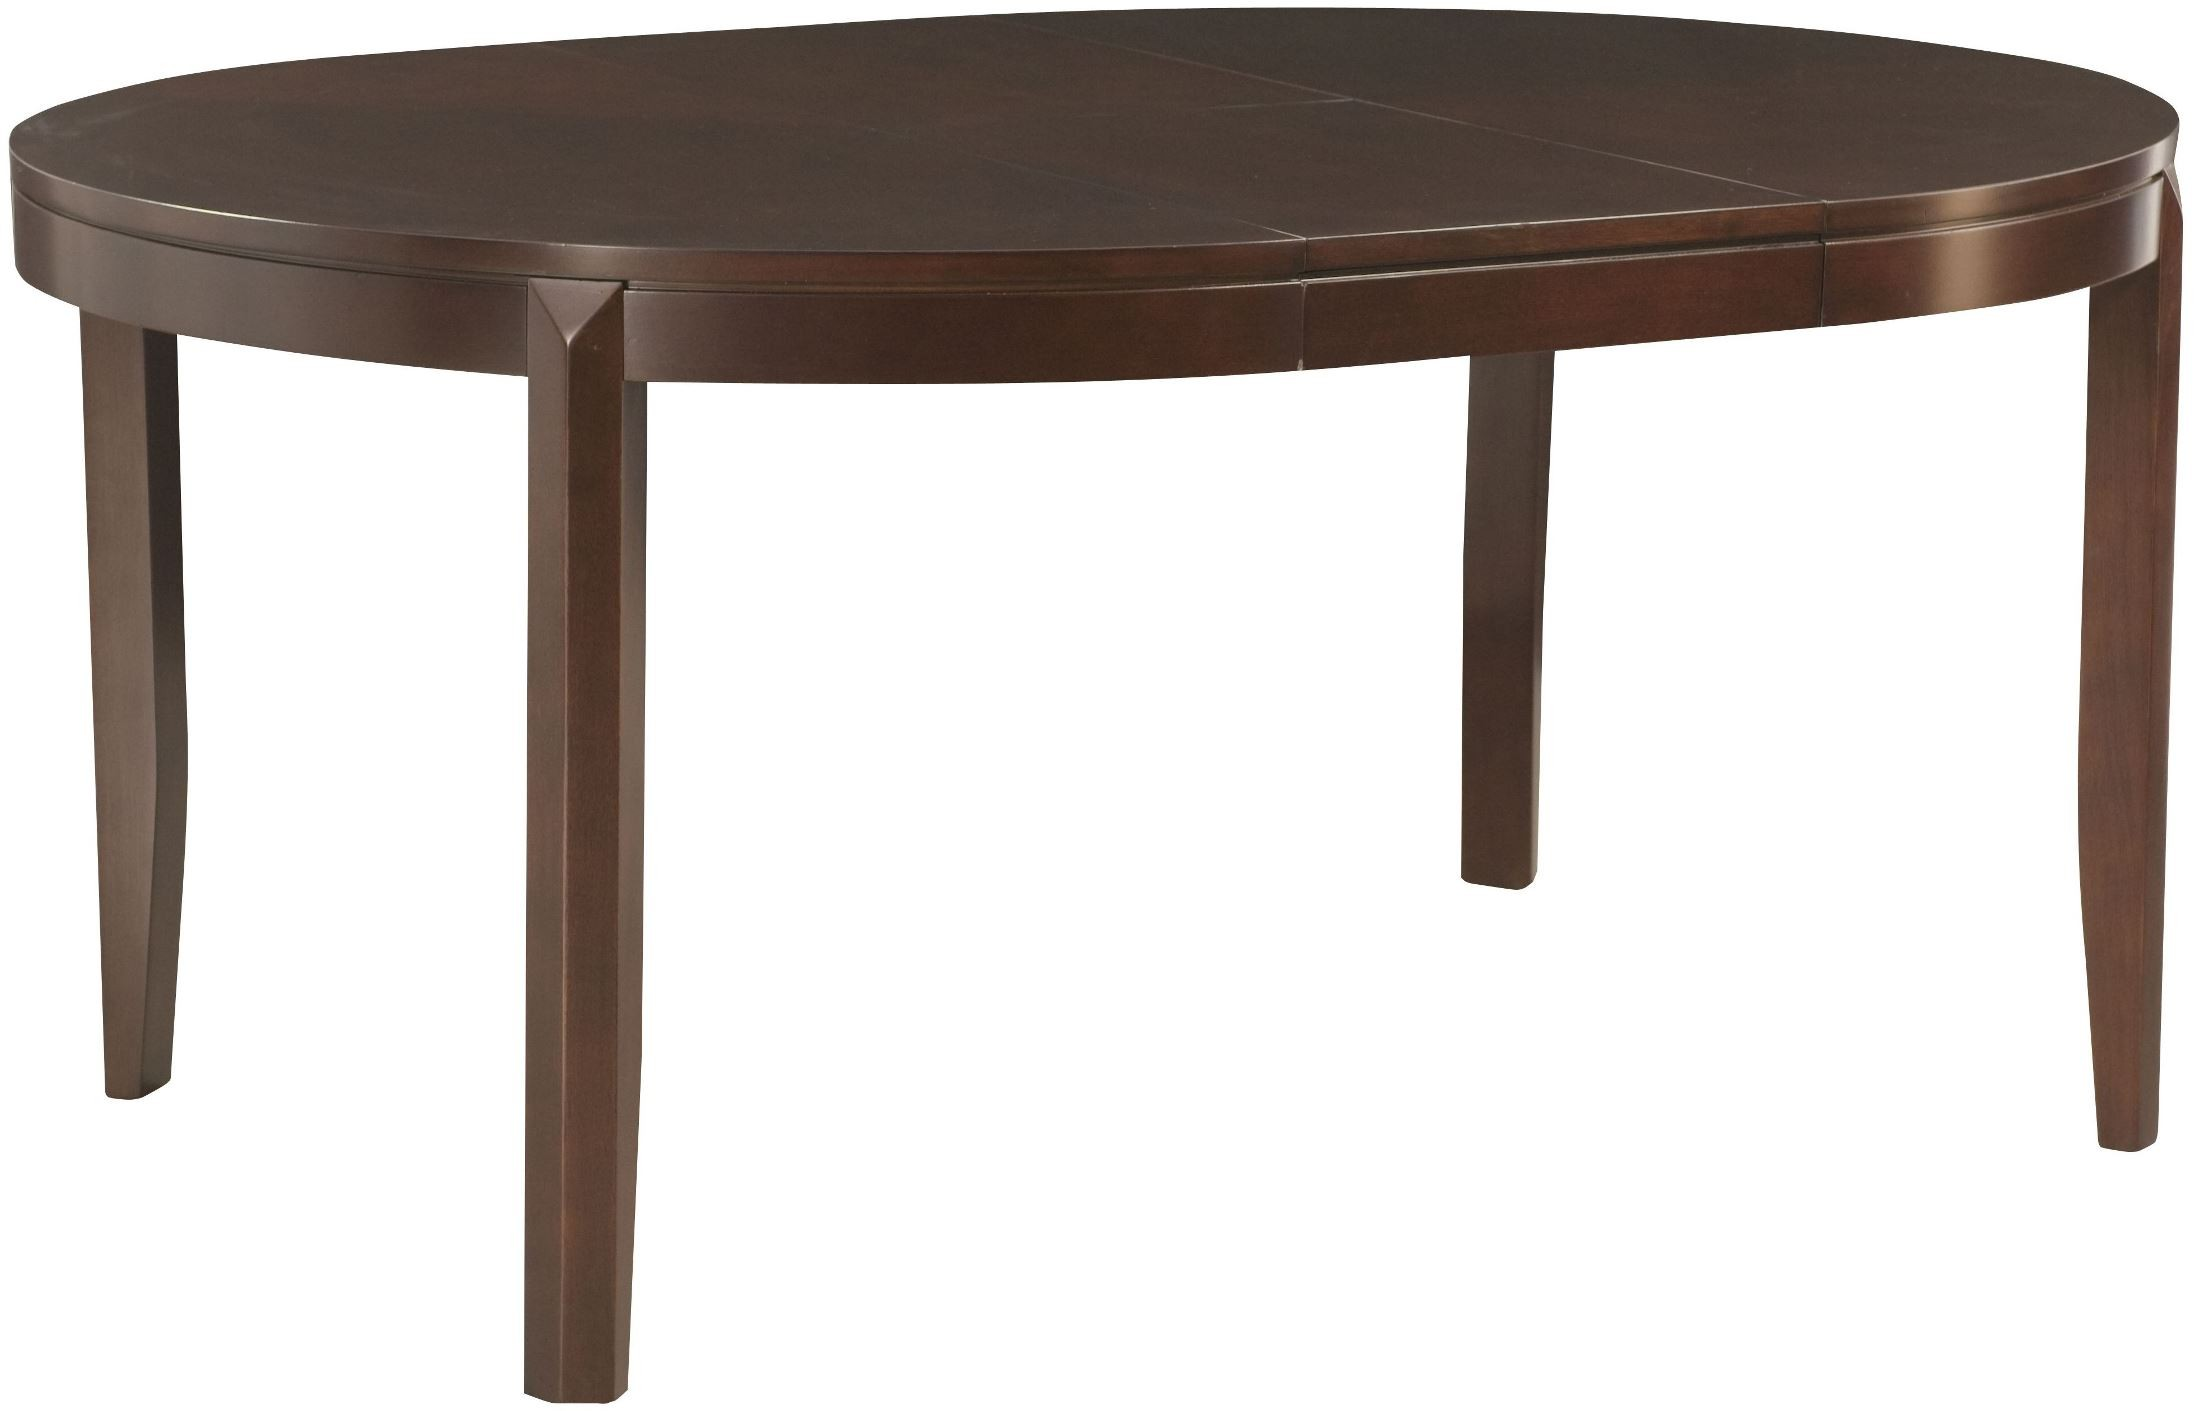 Tribecca root beer extendable round leg dining table from for One leg dining table